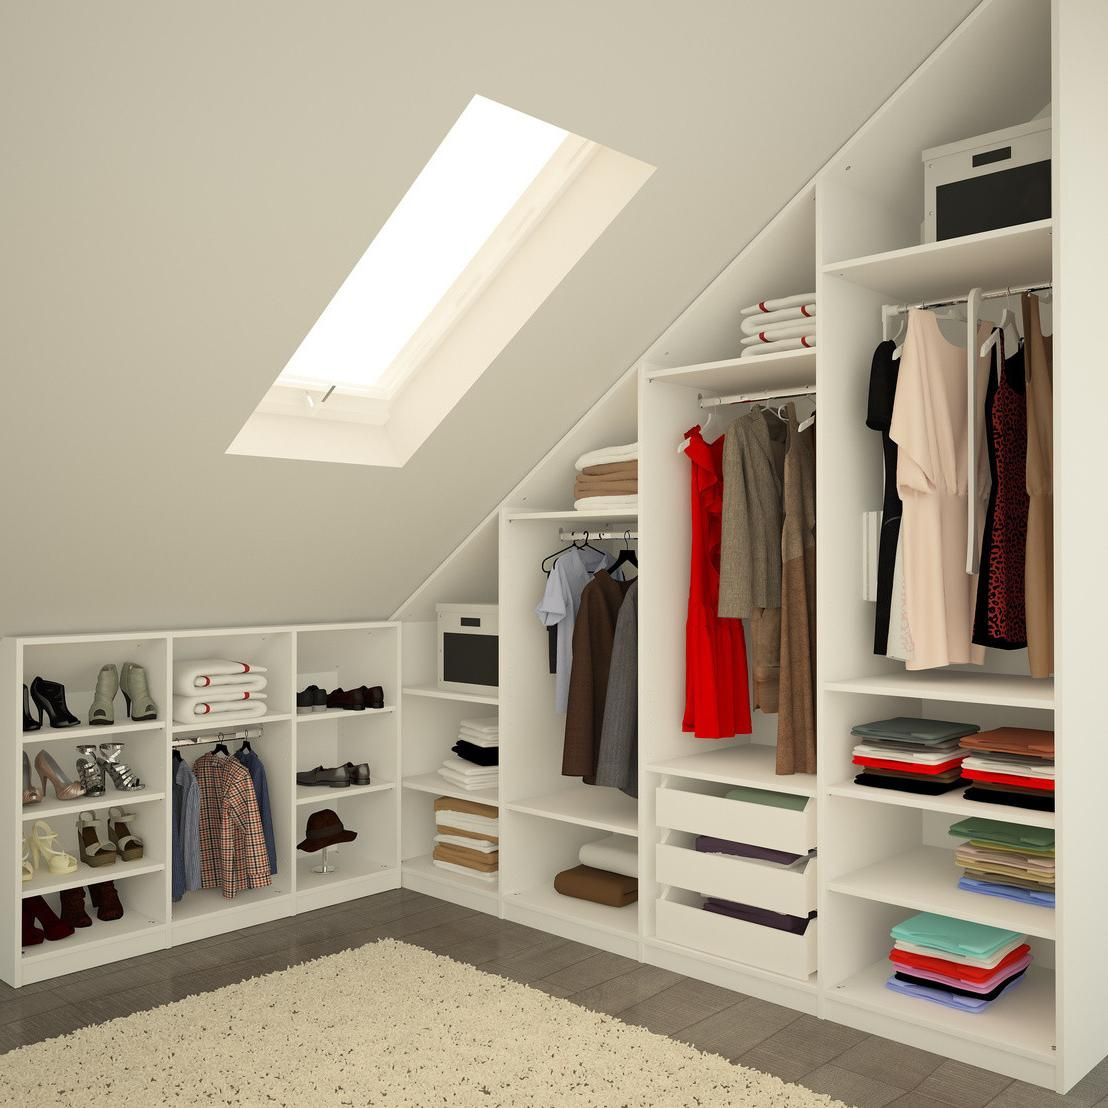 Small Attic Bedroom Built In Wardrobes Design For Small Bedroom And Chest Of Drawers